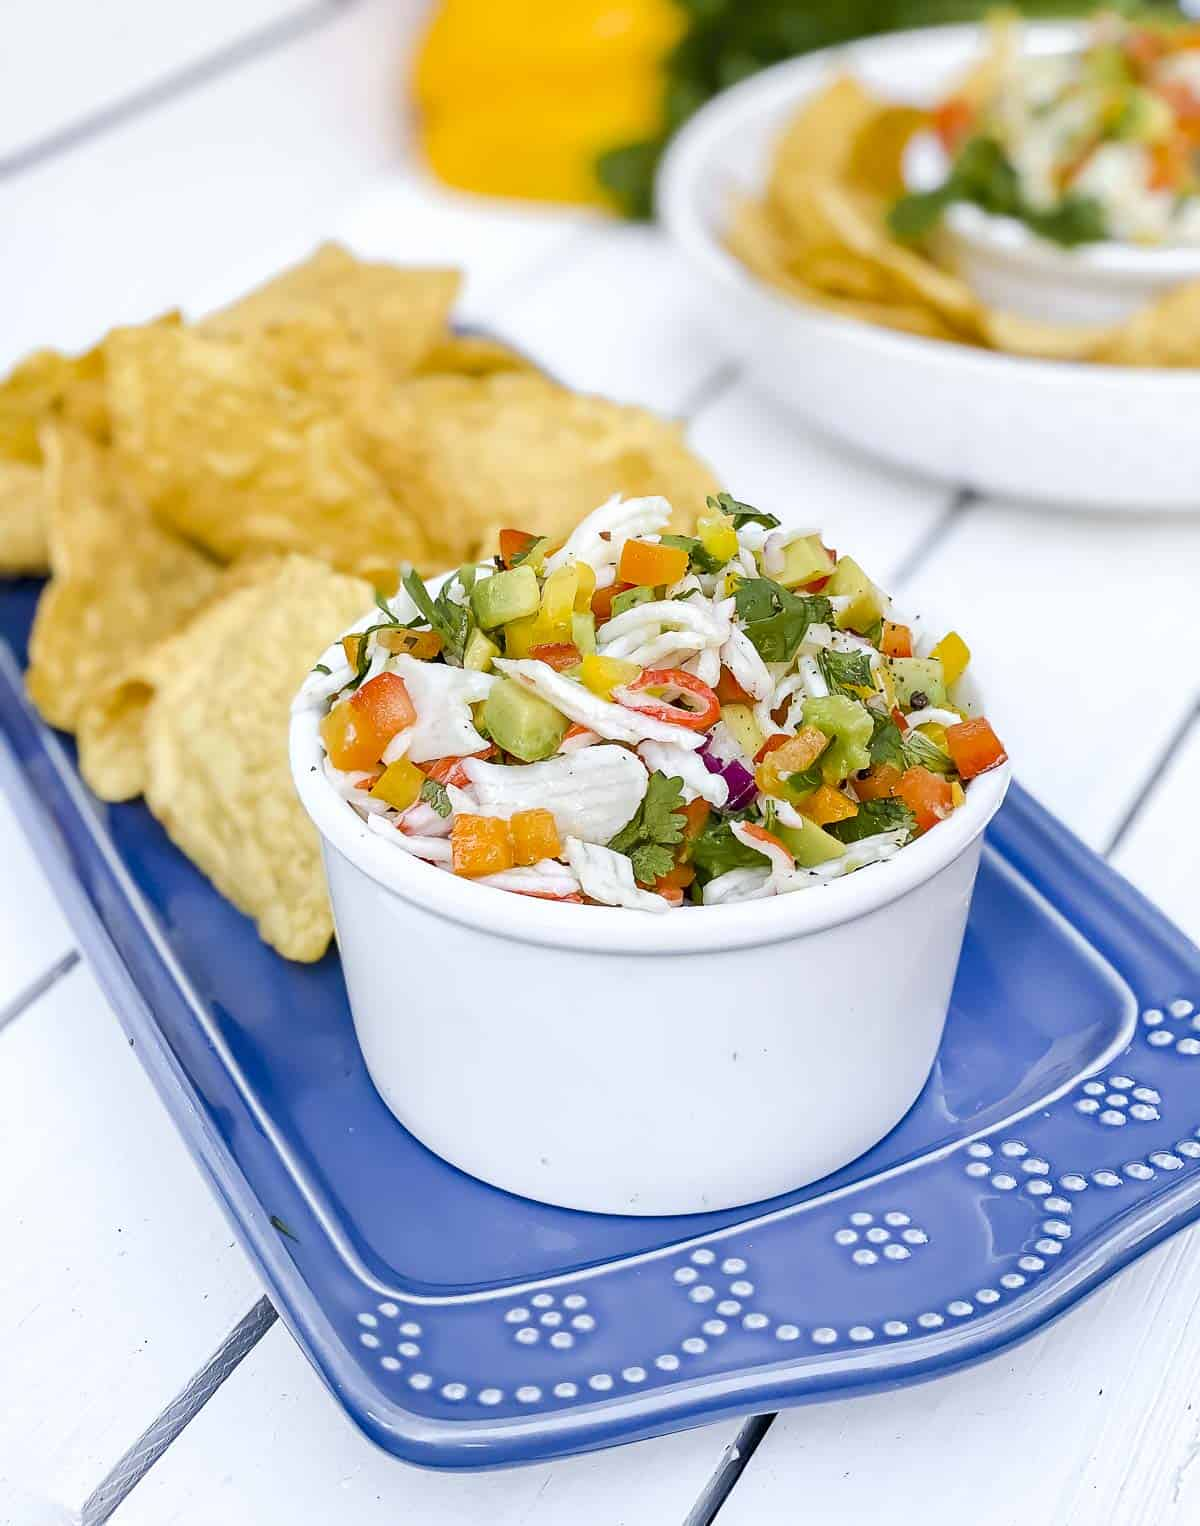 Imitation crab ceviche in a white bowl with tortilla chips on serving tray.